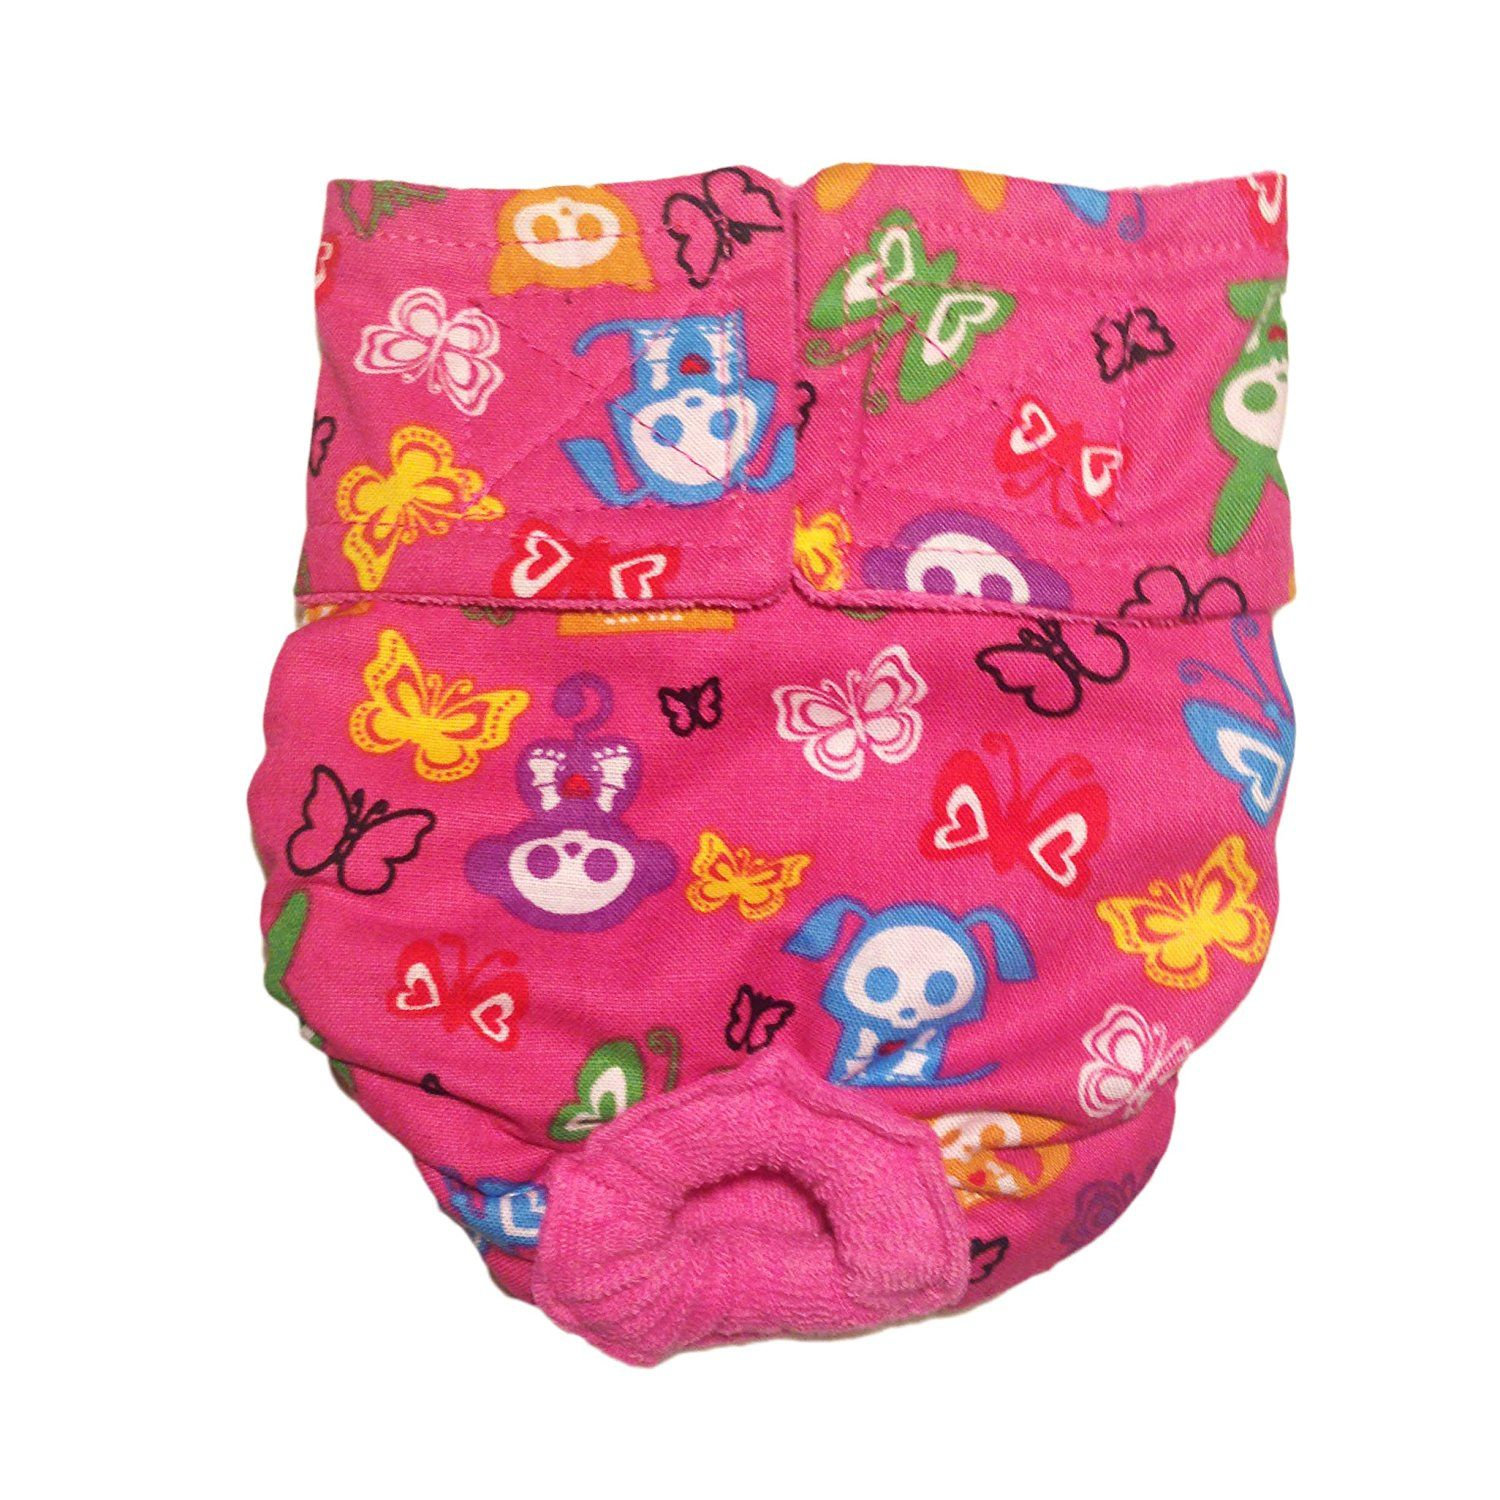 Cat diapers made in usa skeleton figures on pink